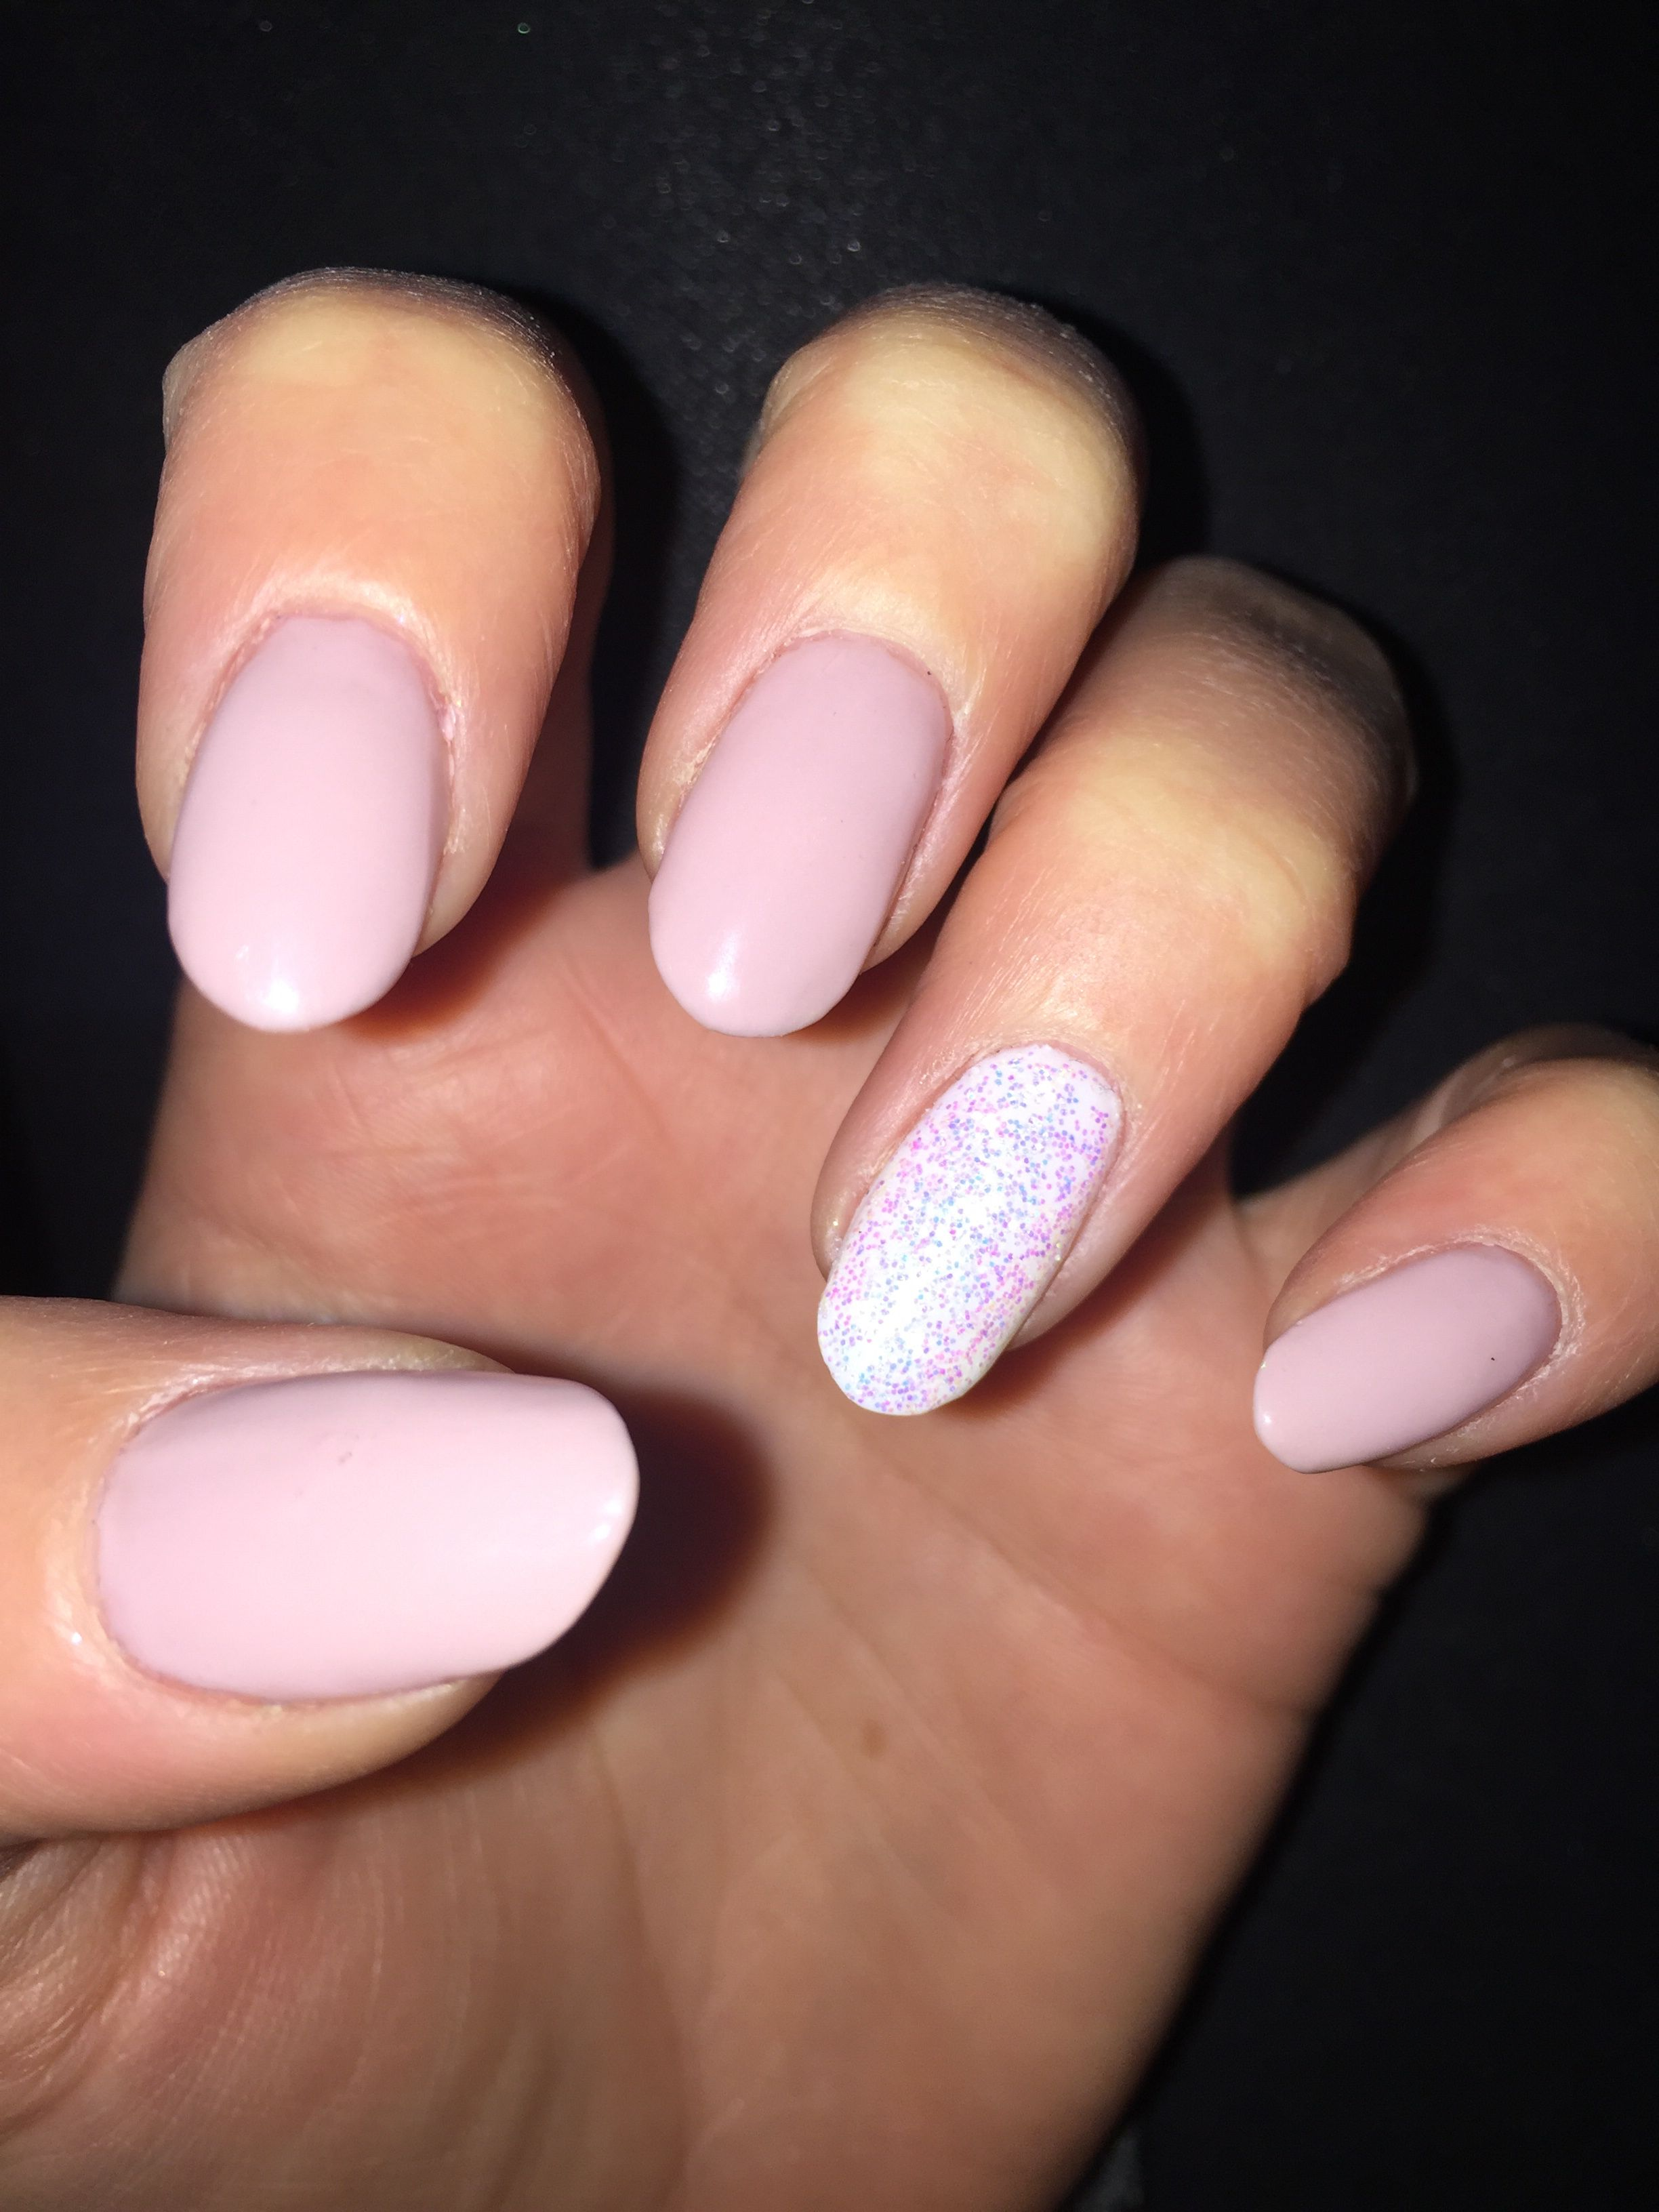 Dusky Pink Nails Ring Finger With White Glitter Pink Nails White Glitter Nails Gold Acrylic Nails